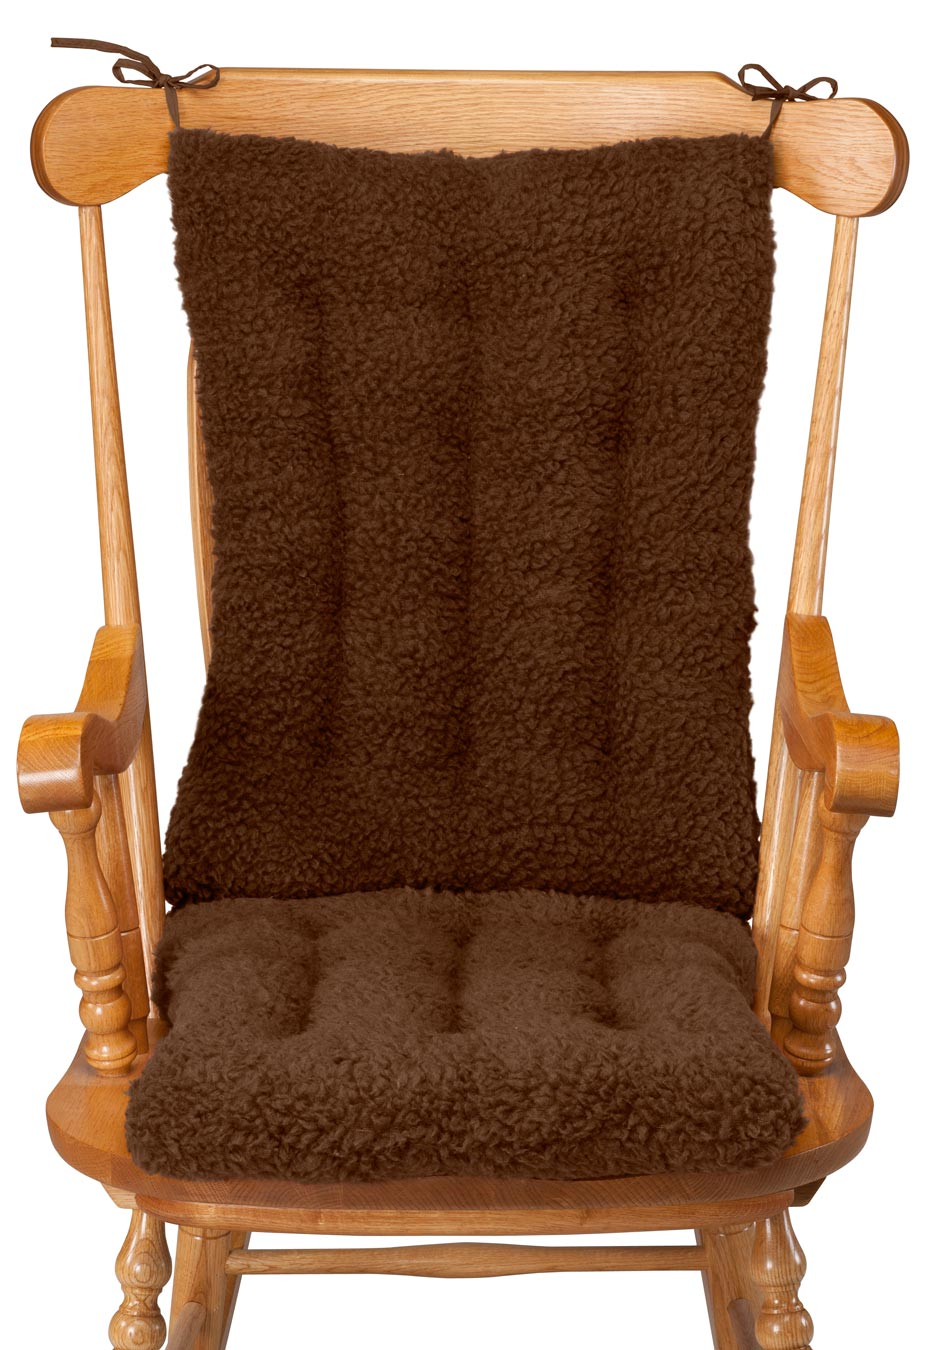 Antique Parlor Chair furthermore Rocking Chair D Occasion moreover Replacement Cushions For Glider And Ottoman together with 391404430067 additionally Hardware. on rocking chair cushions ebay